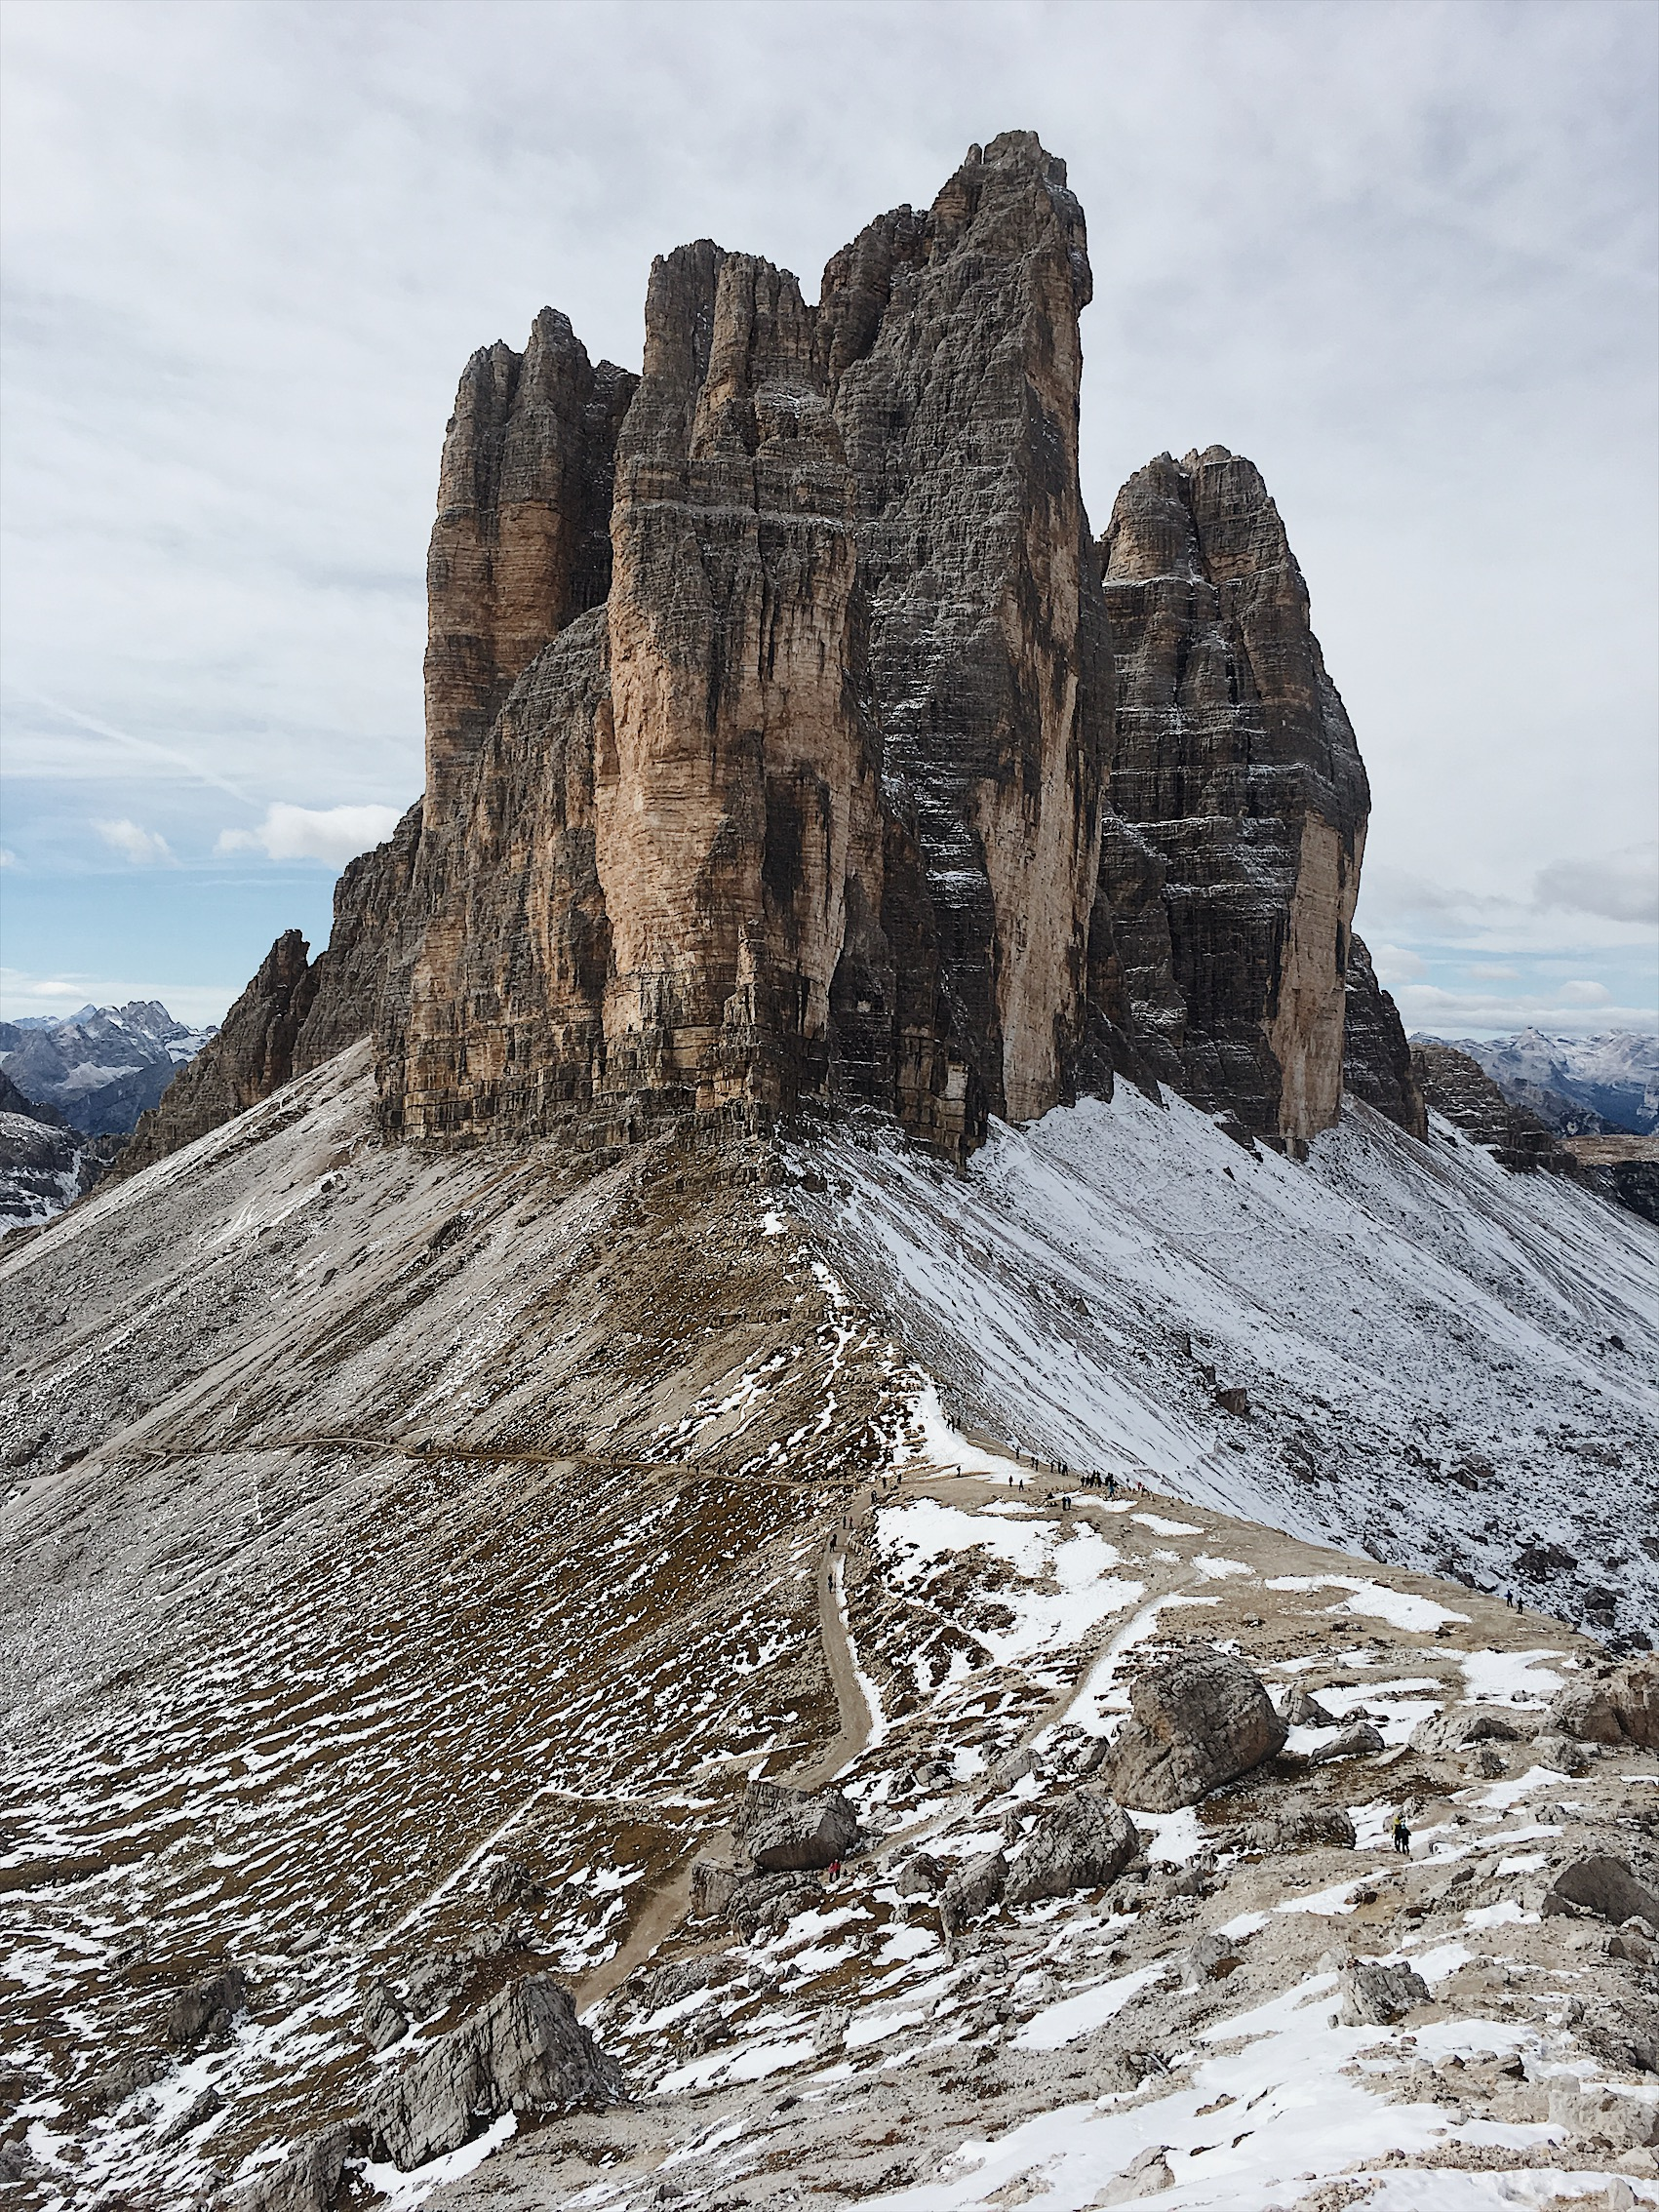 Tre Cime, checkout the tiny people on the path!